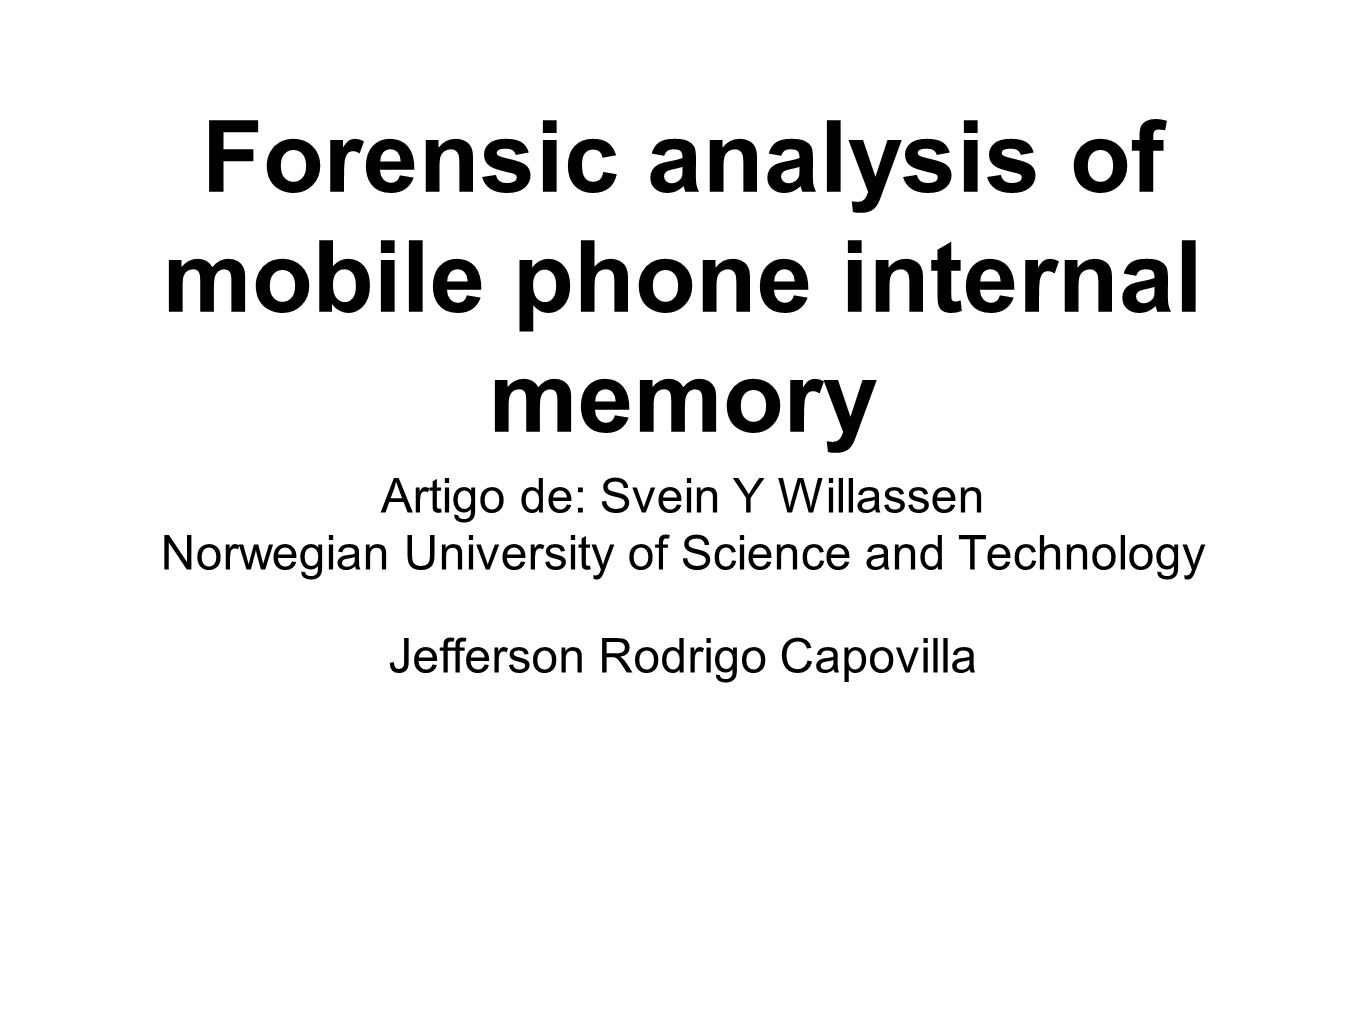 Forensic analysis of mobile phone internal memory